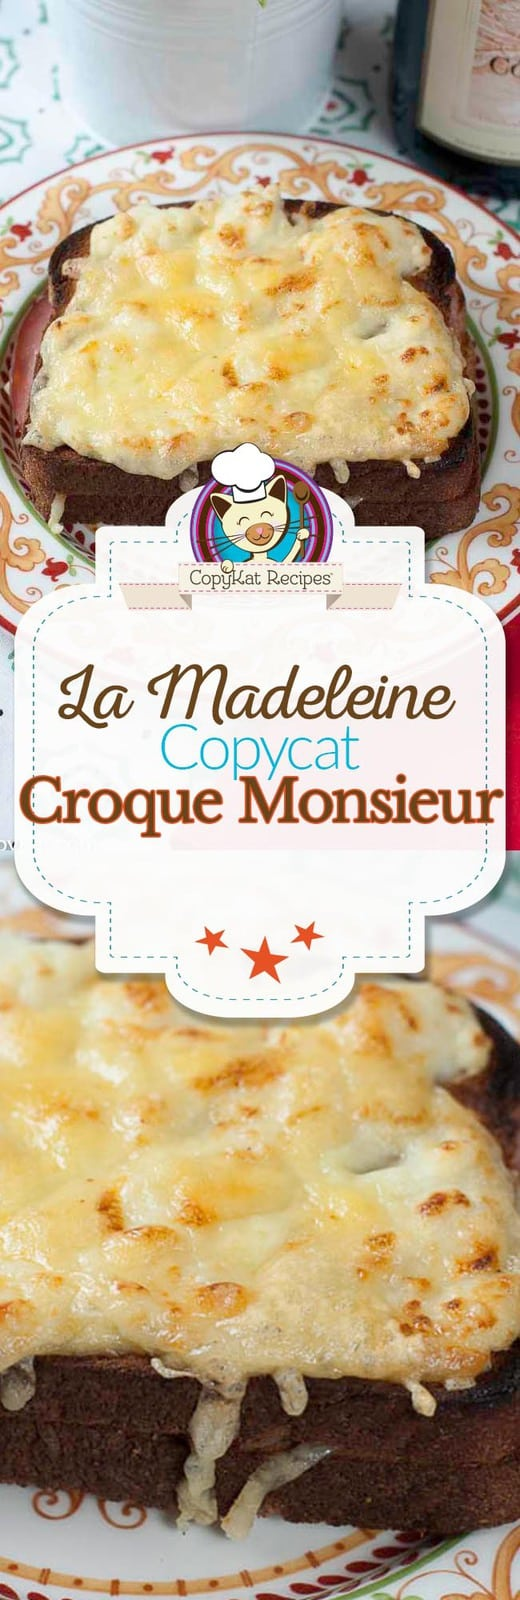 Prepare your own homemade version of the La Madeleine Croque Monsieur at home with this copycat recipe.